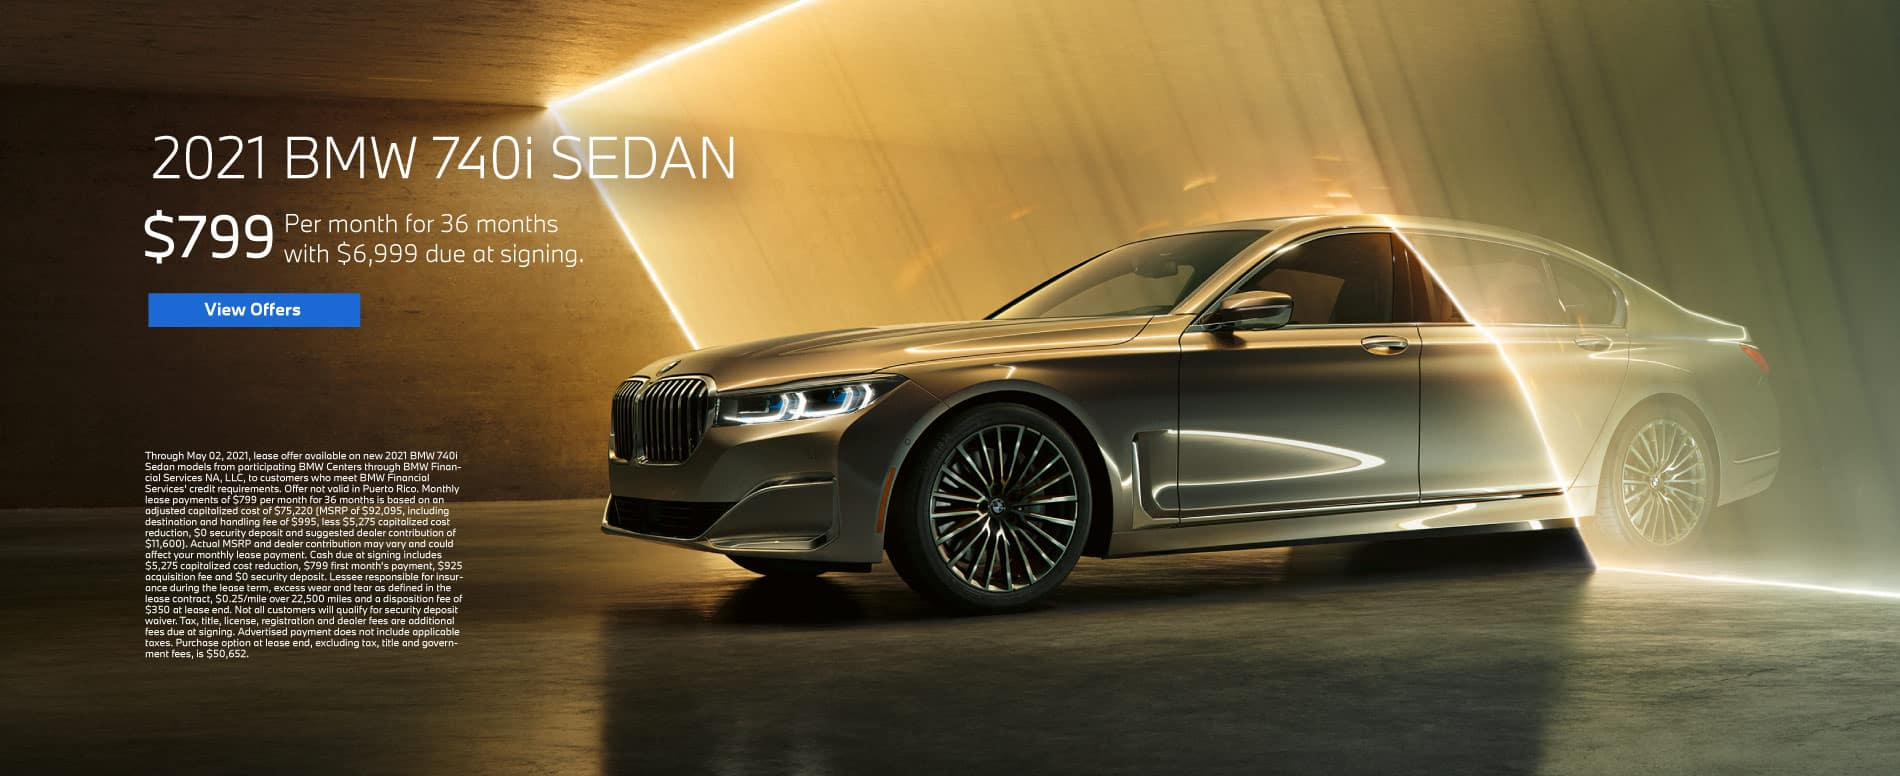 New 2021 BMW 740i SEDAN - $799 Per month for 36 months with $6999 due at signing